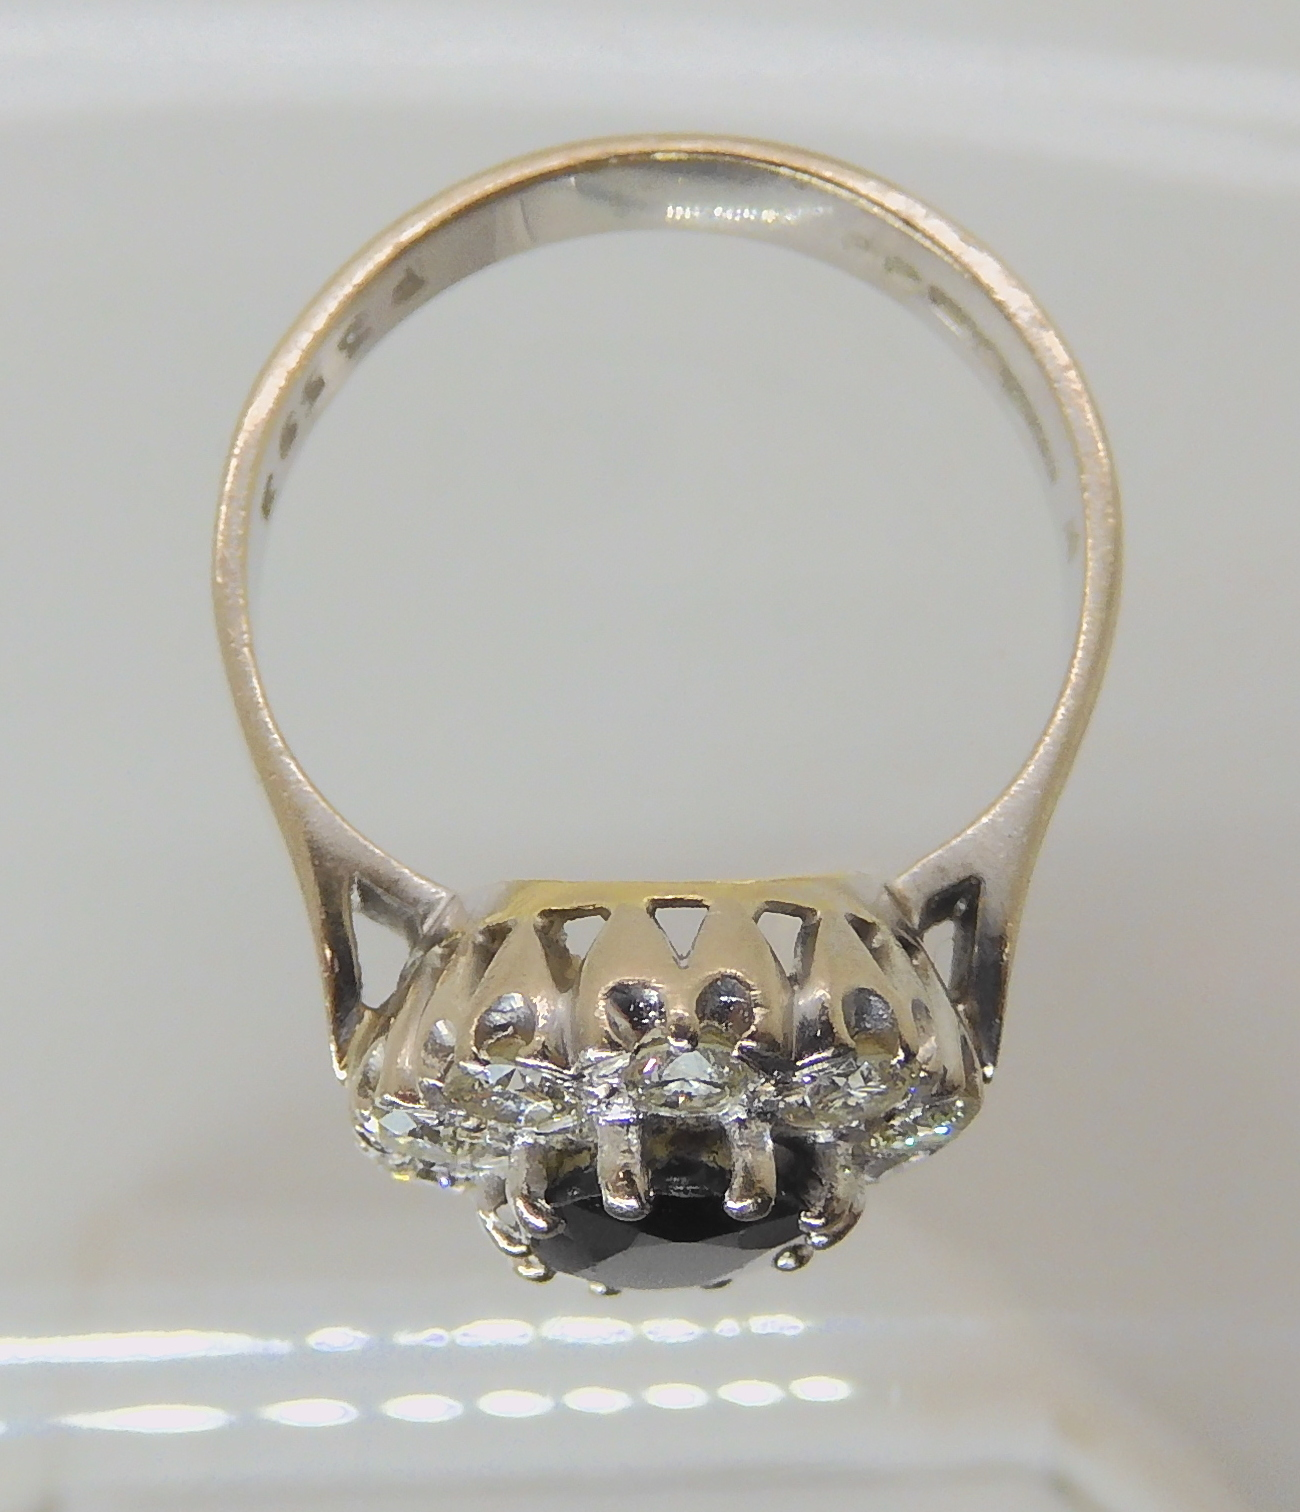 AN 18CT WHITE GOLD SAPPHIRE AND DIAMOND CLUSTER RING set with estimated approx 0.50cts of - Image 7 of 8